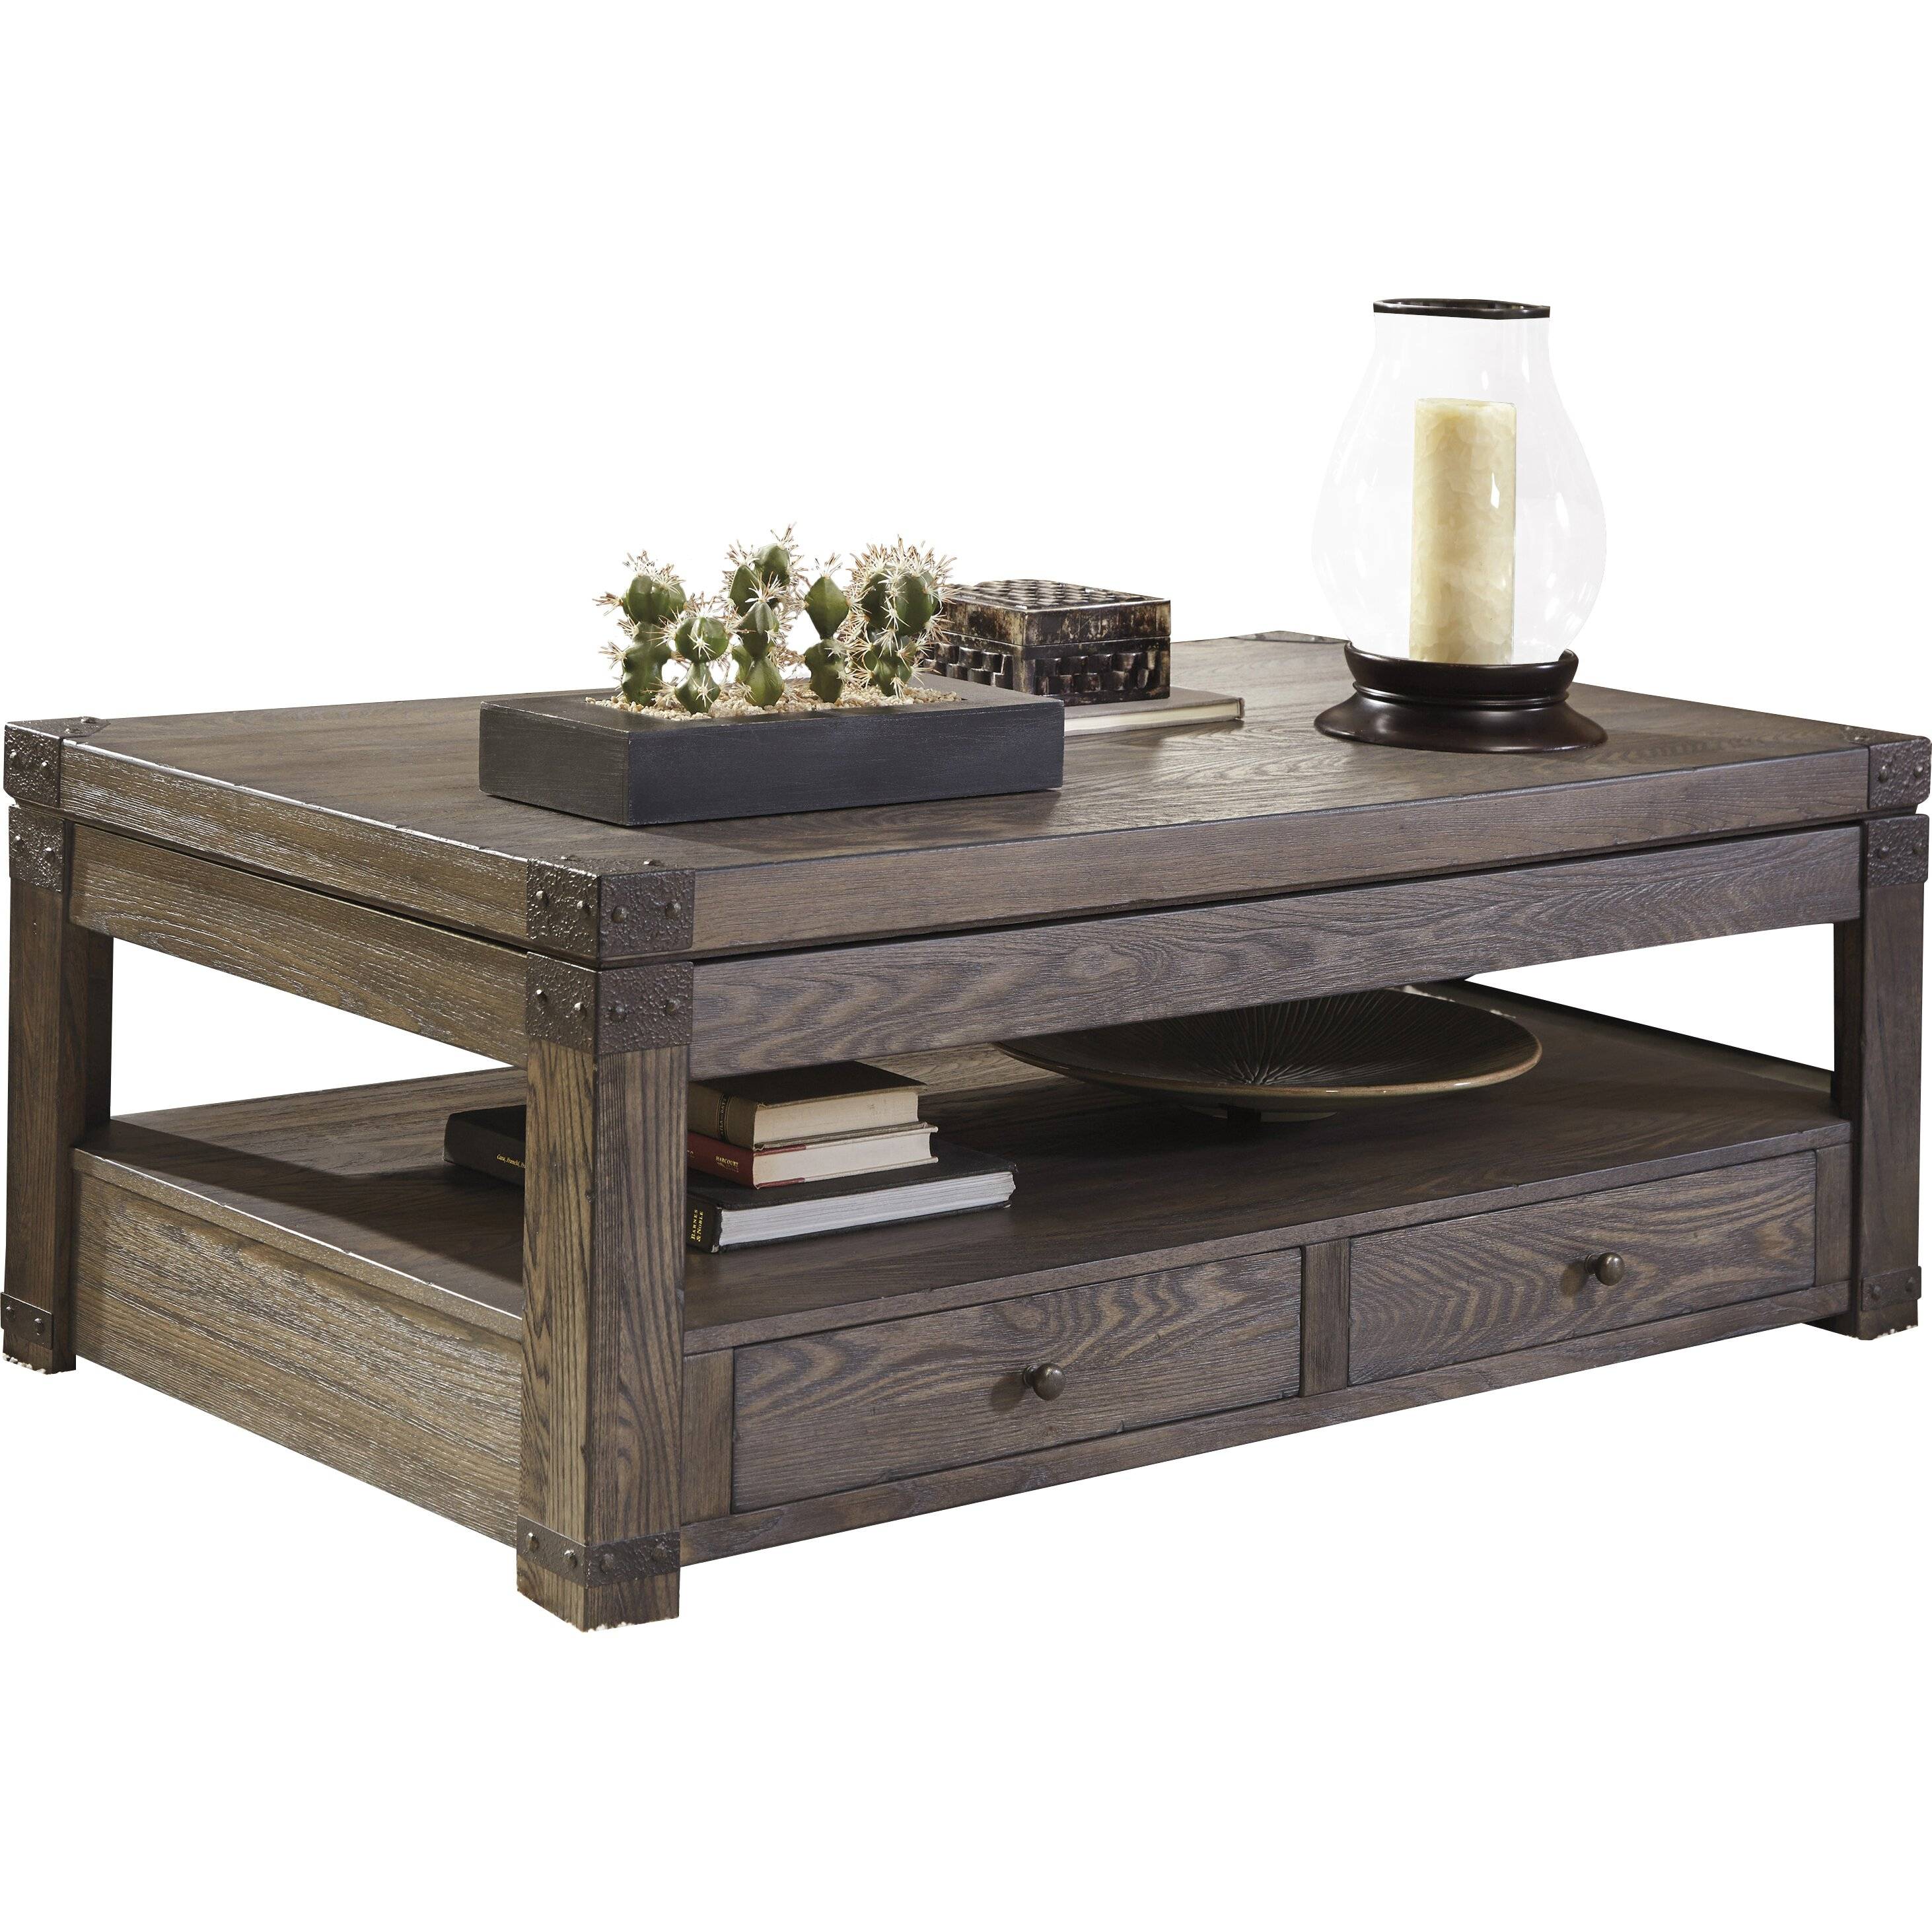 Signature Design By Ashley Burladen Coffee Table With Lift Top Reviews Wayfair